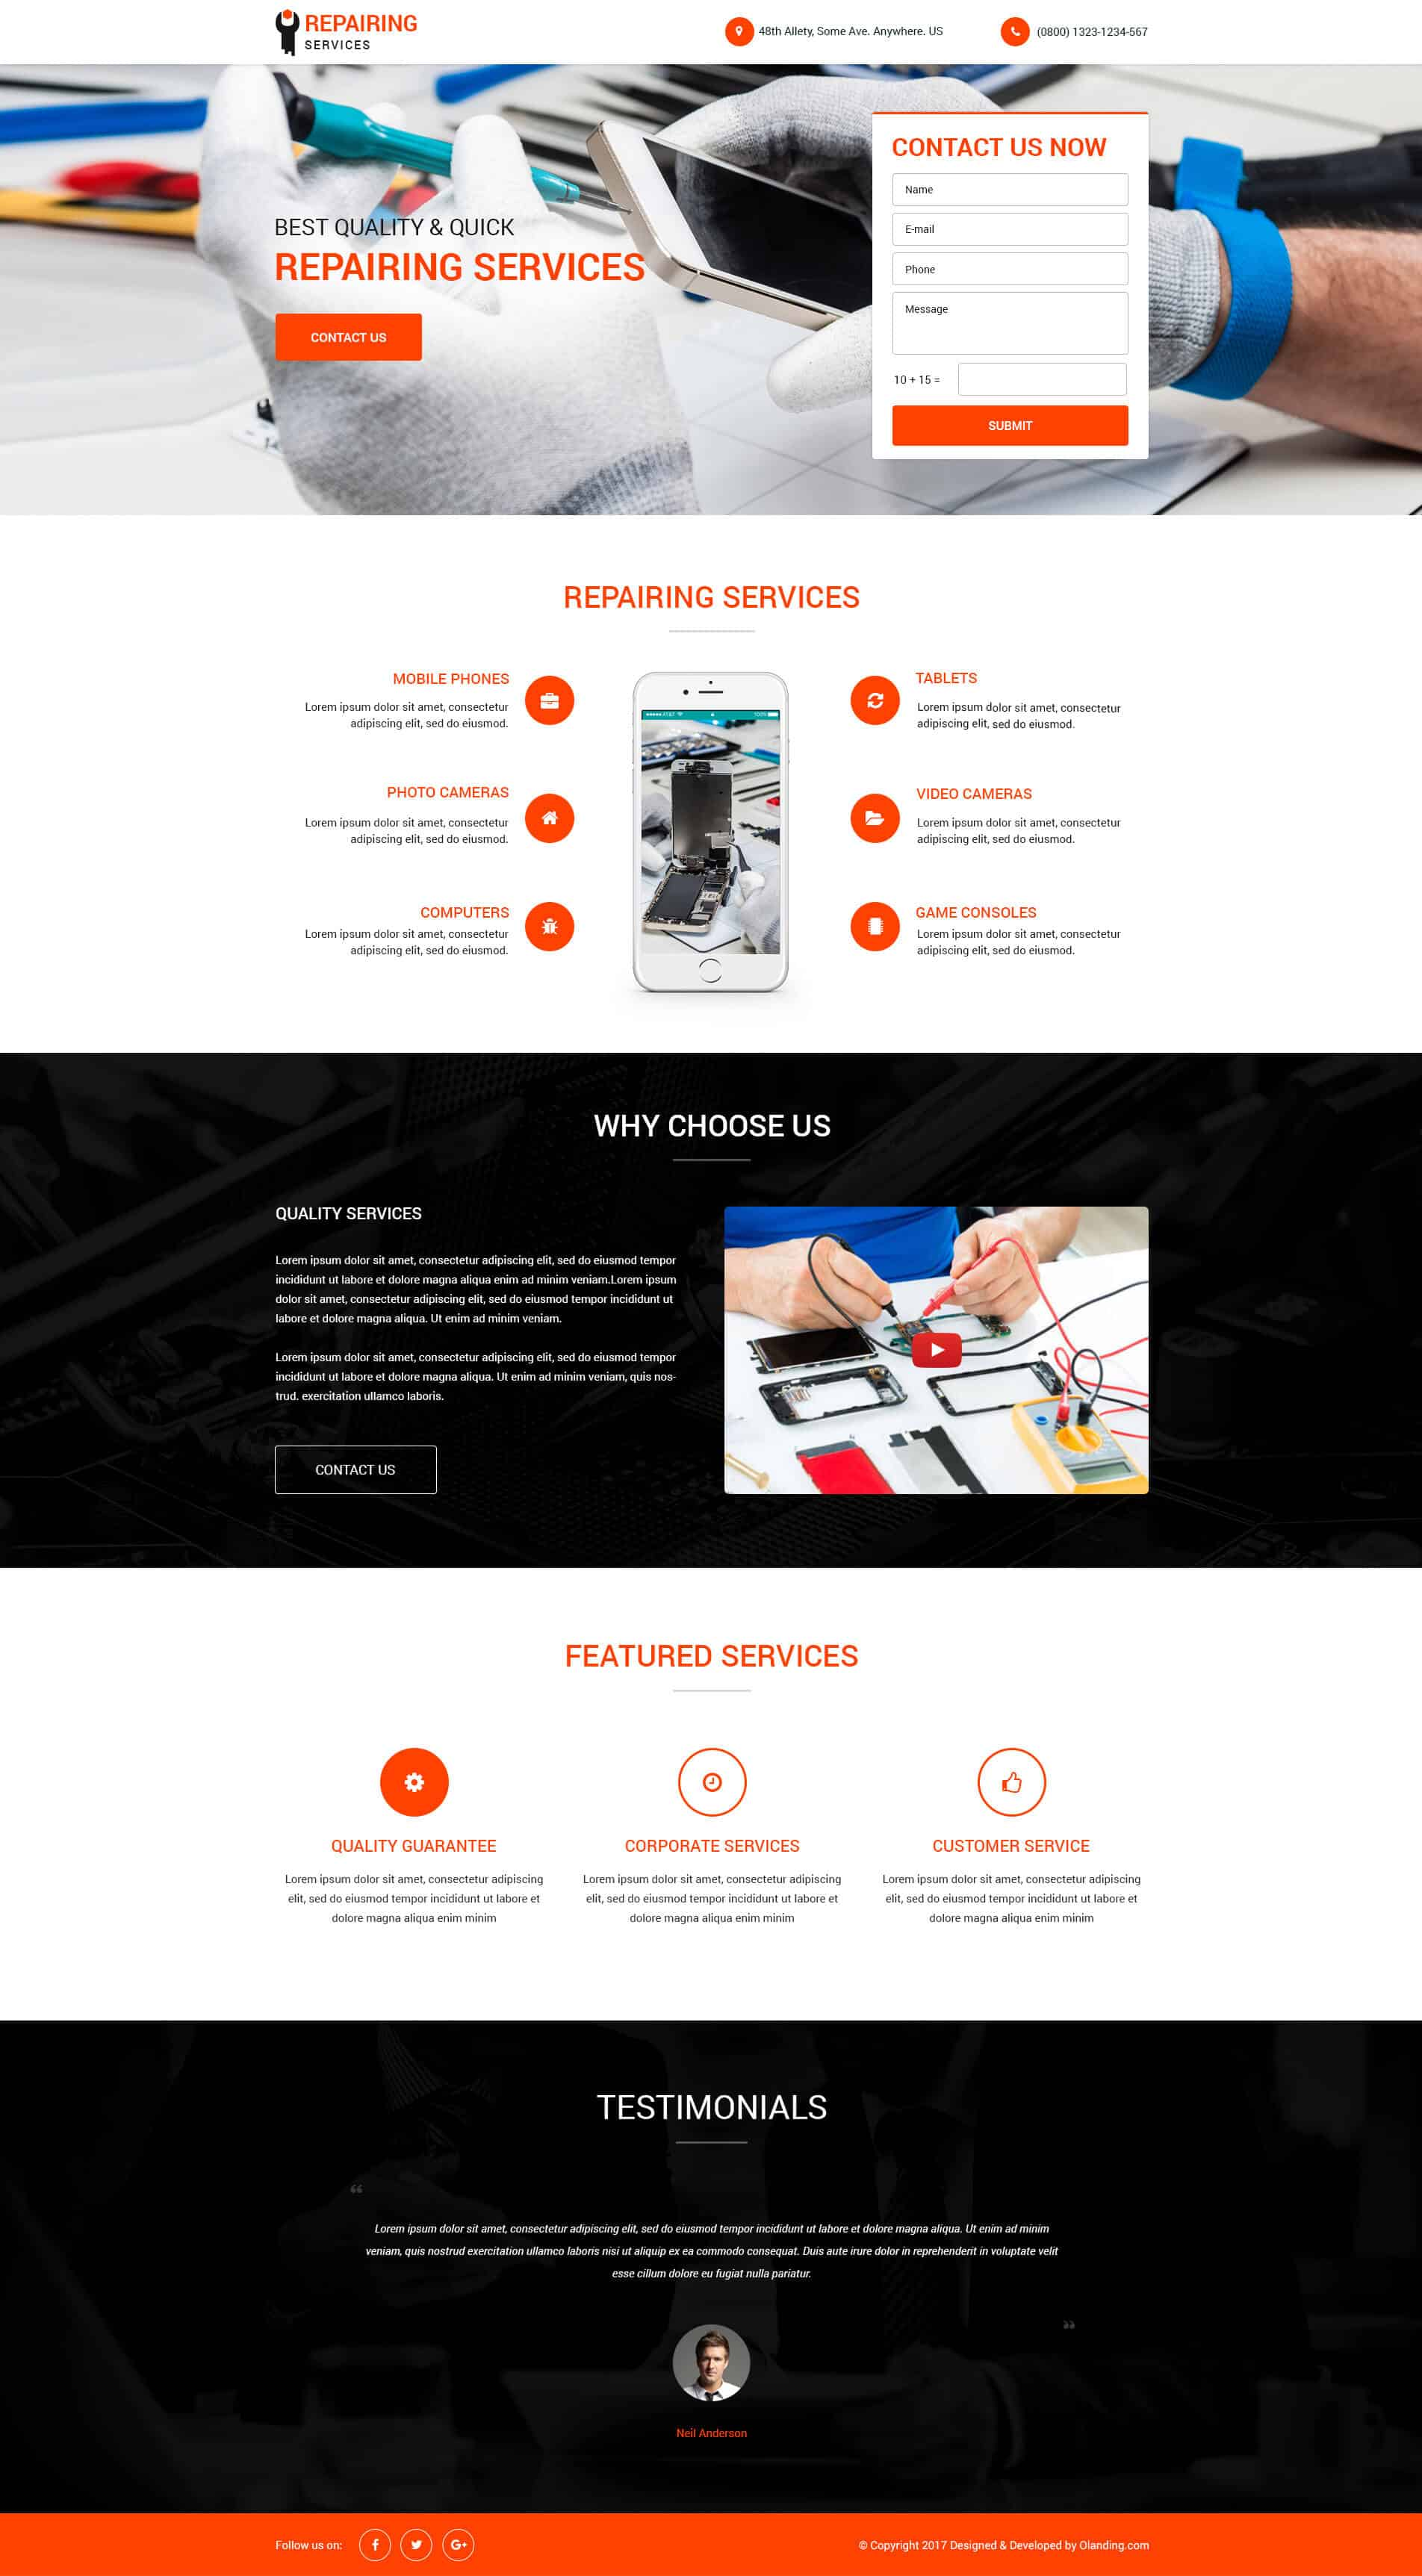 mobile repair services landing page